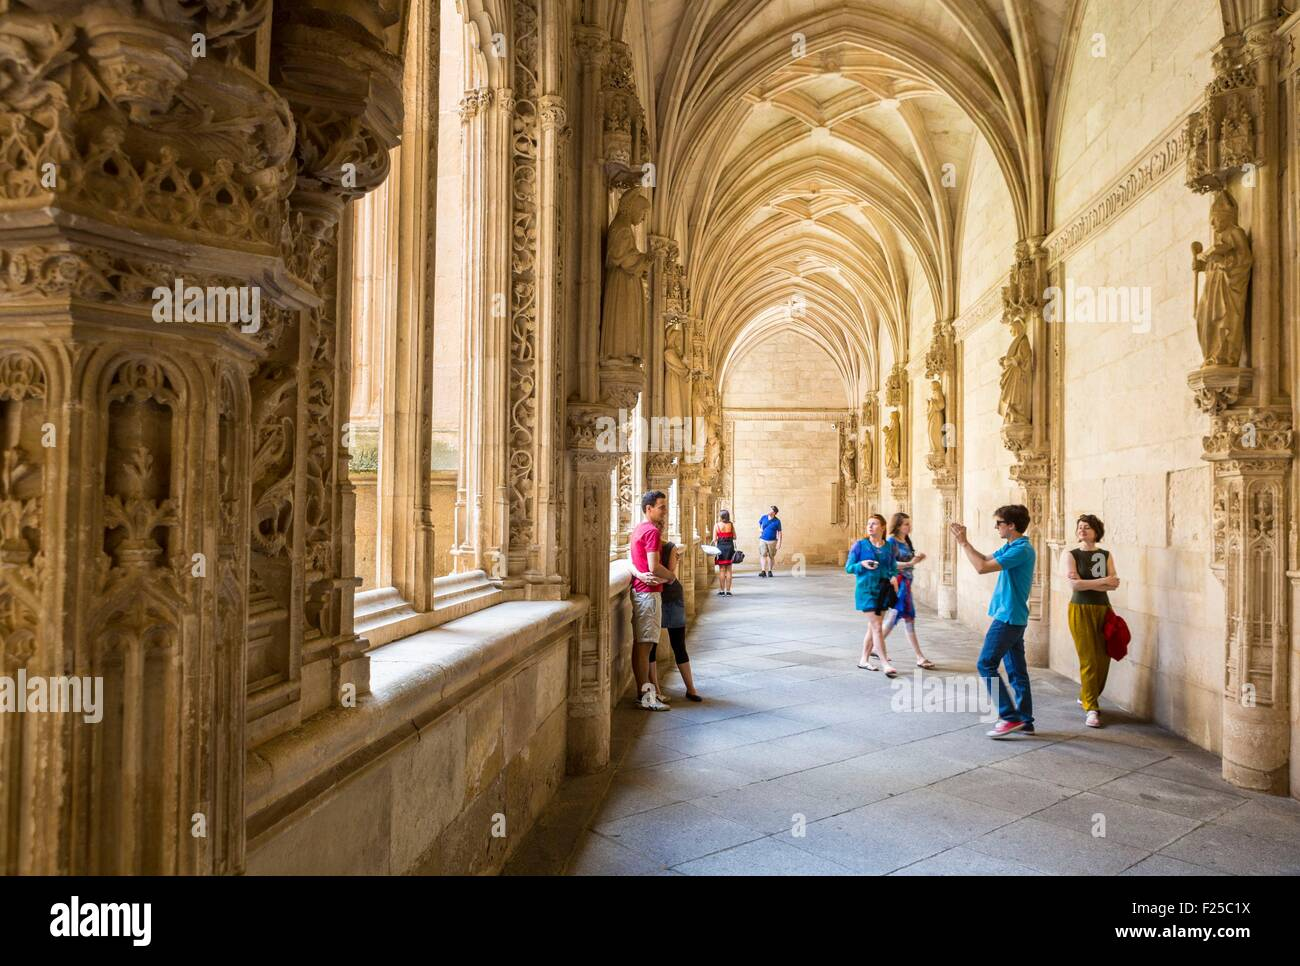 Spain, Castilla La Mancha, Toledo, historic center listed as World Heritage by UNESCO, the monastery of San Juan - Stock Image